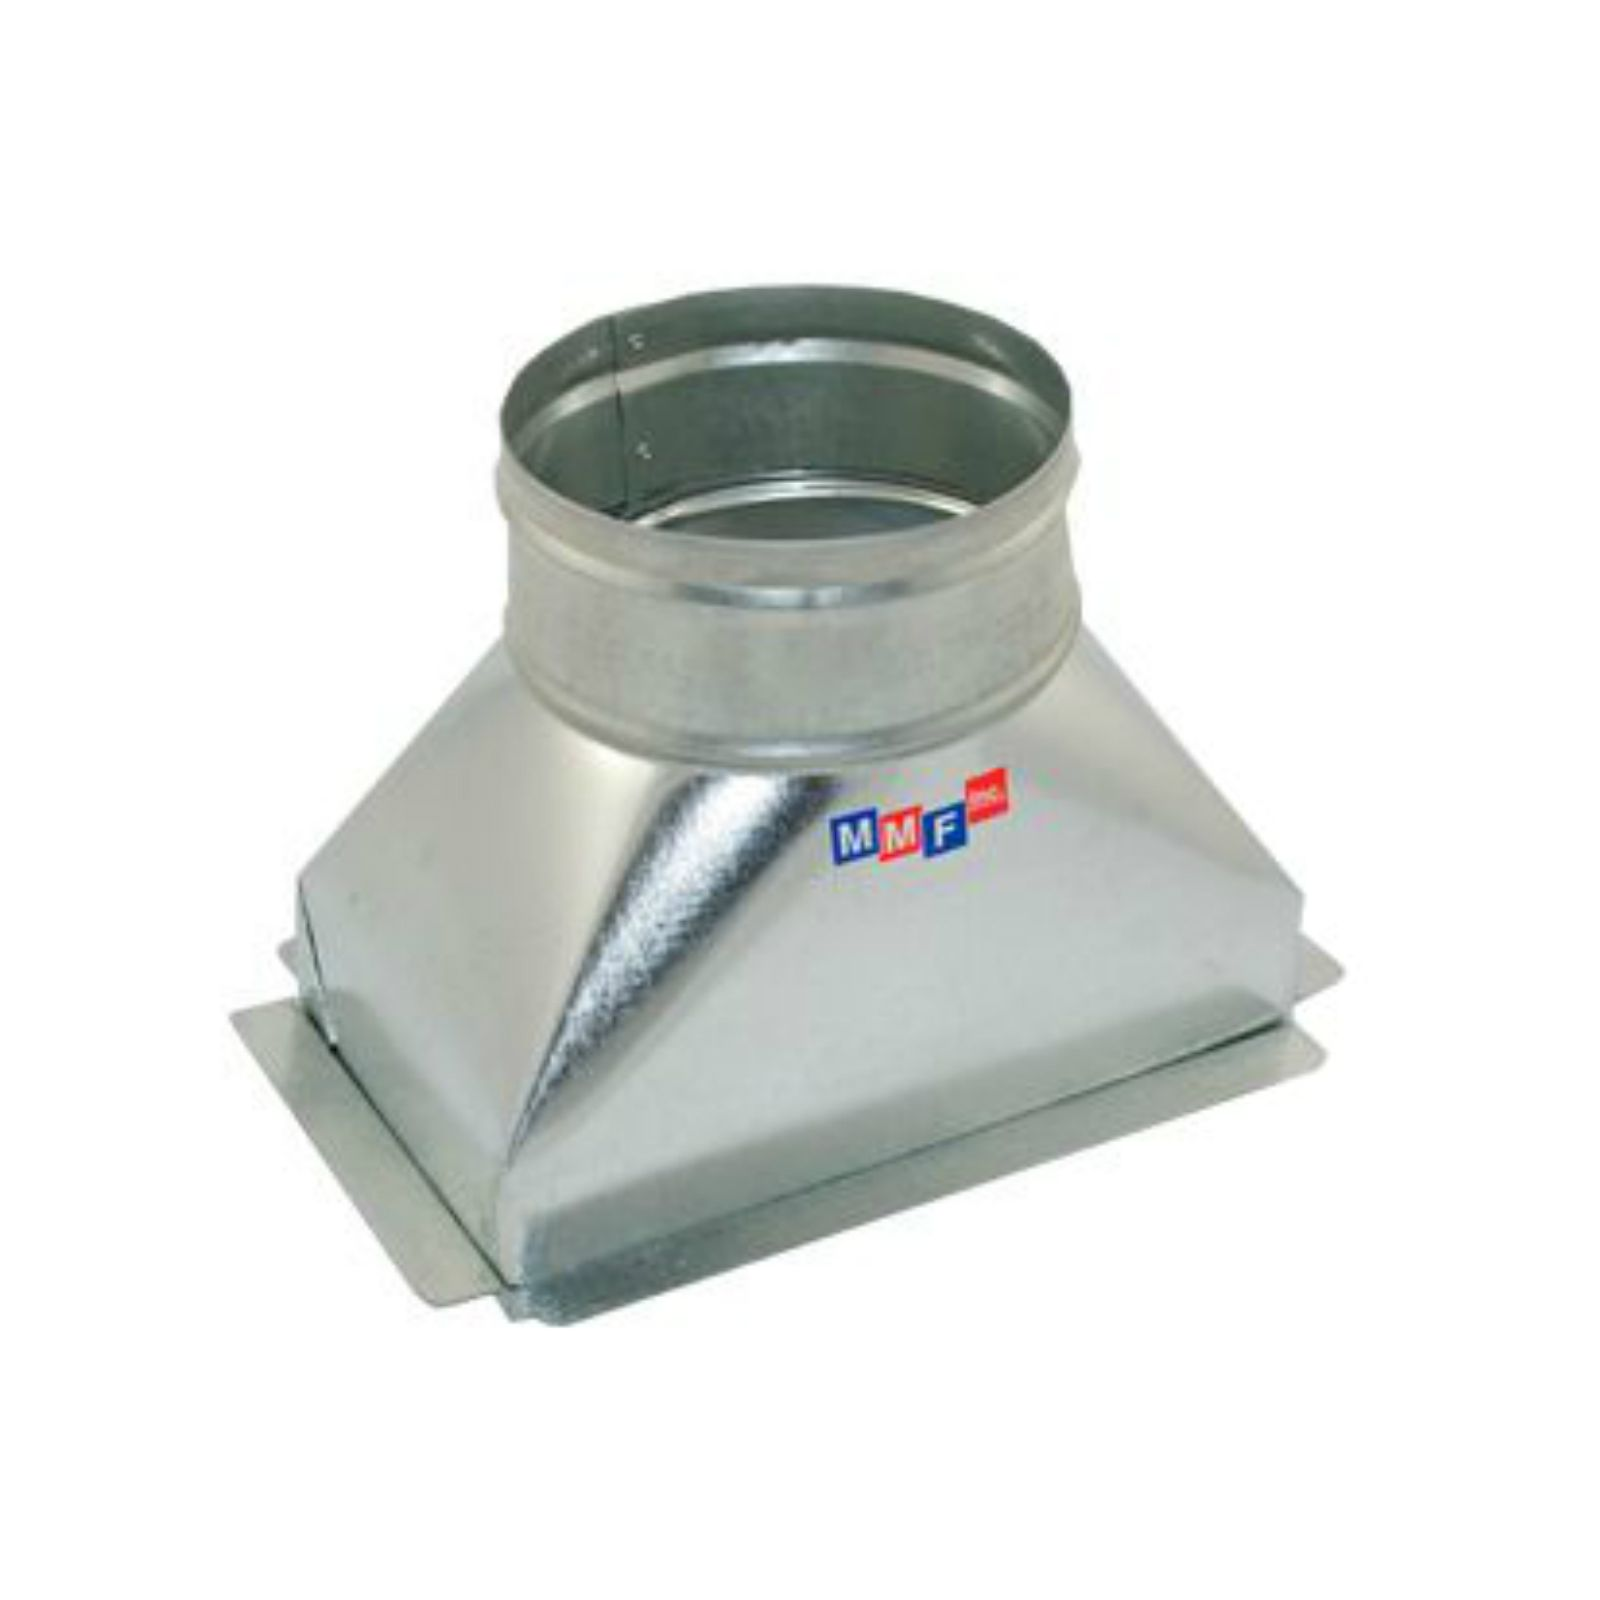 "Modular Metal BTSFI140407P - Sealed Floor Box - 26 Gauge - With Plaster Ground Flange 14"" X 04"" To 07"" Round"